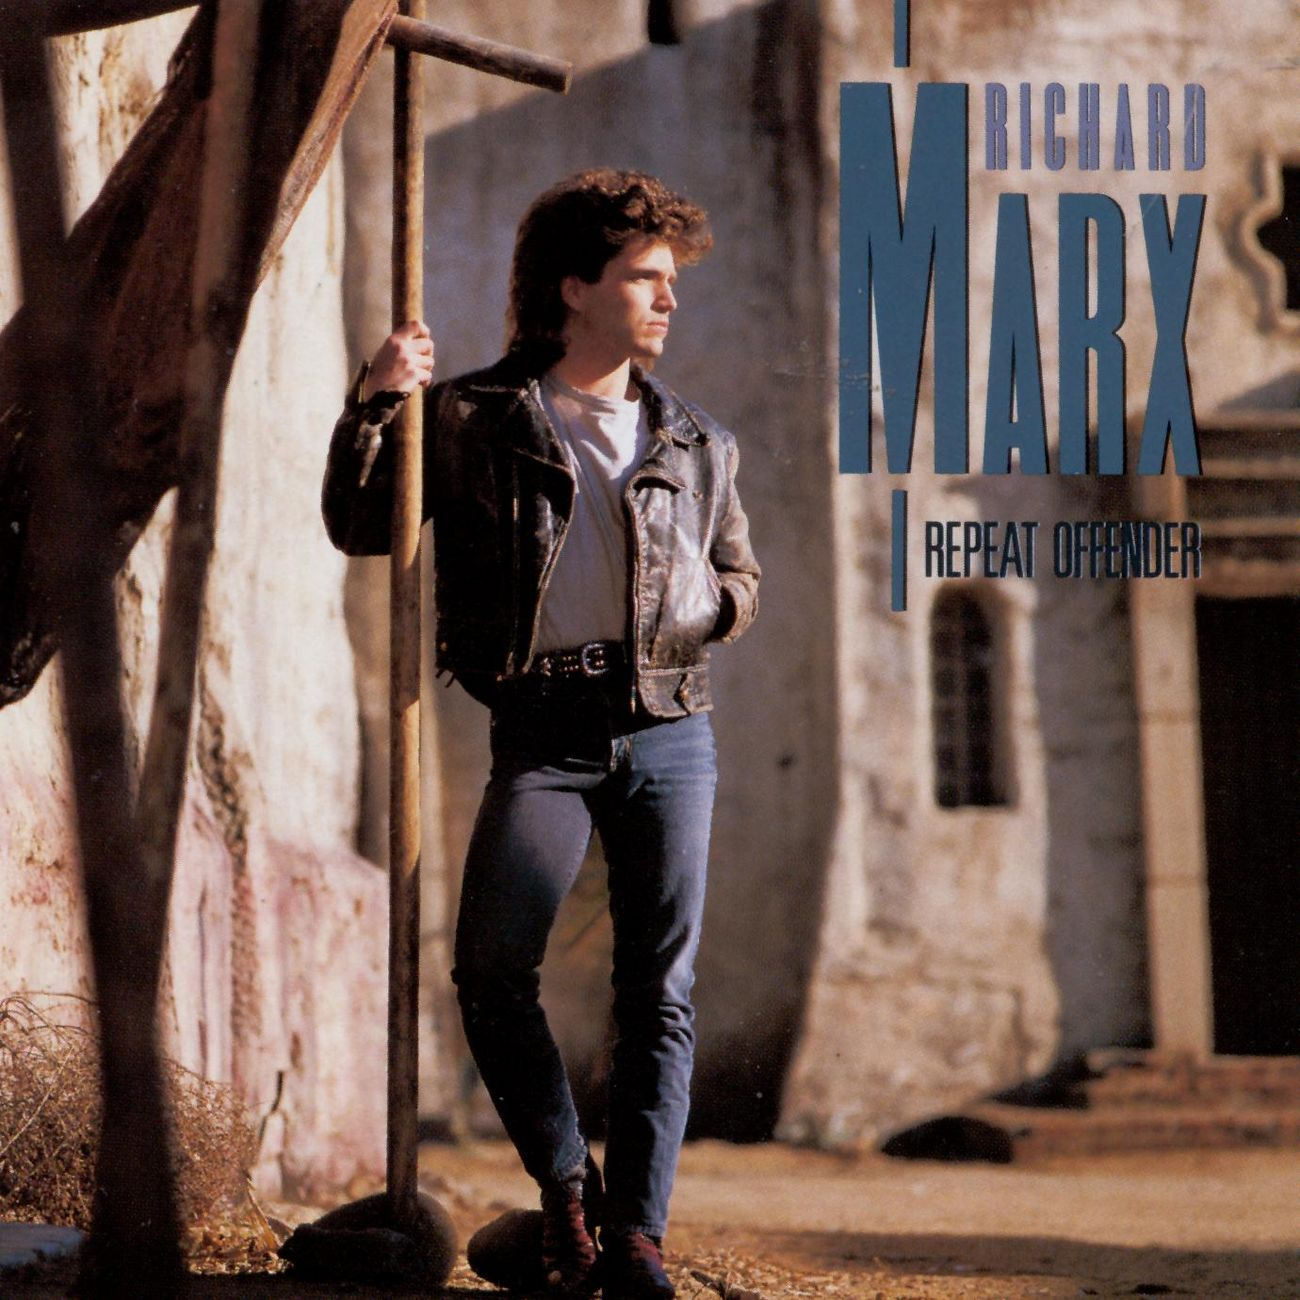 Oceans Apart Day After Day: Listen Free To Richard Marx